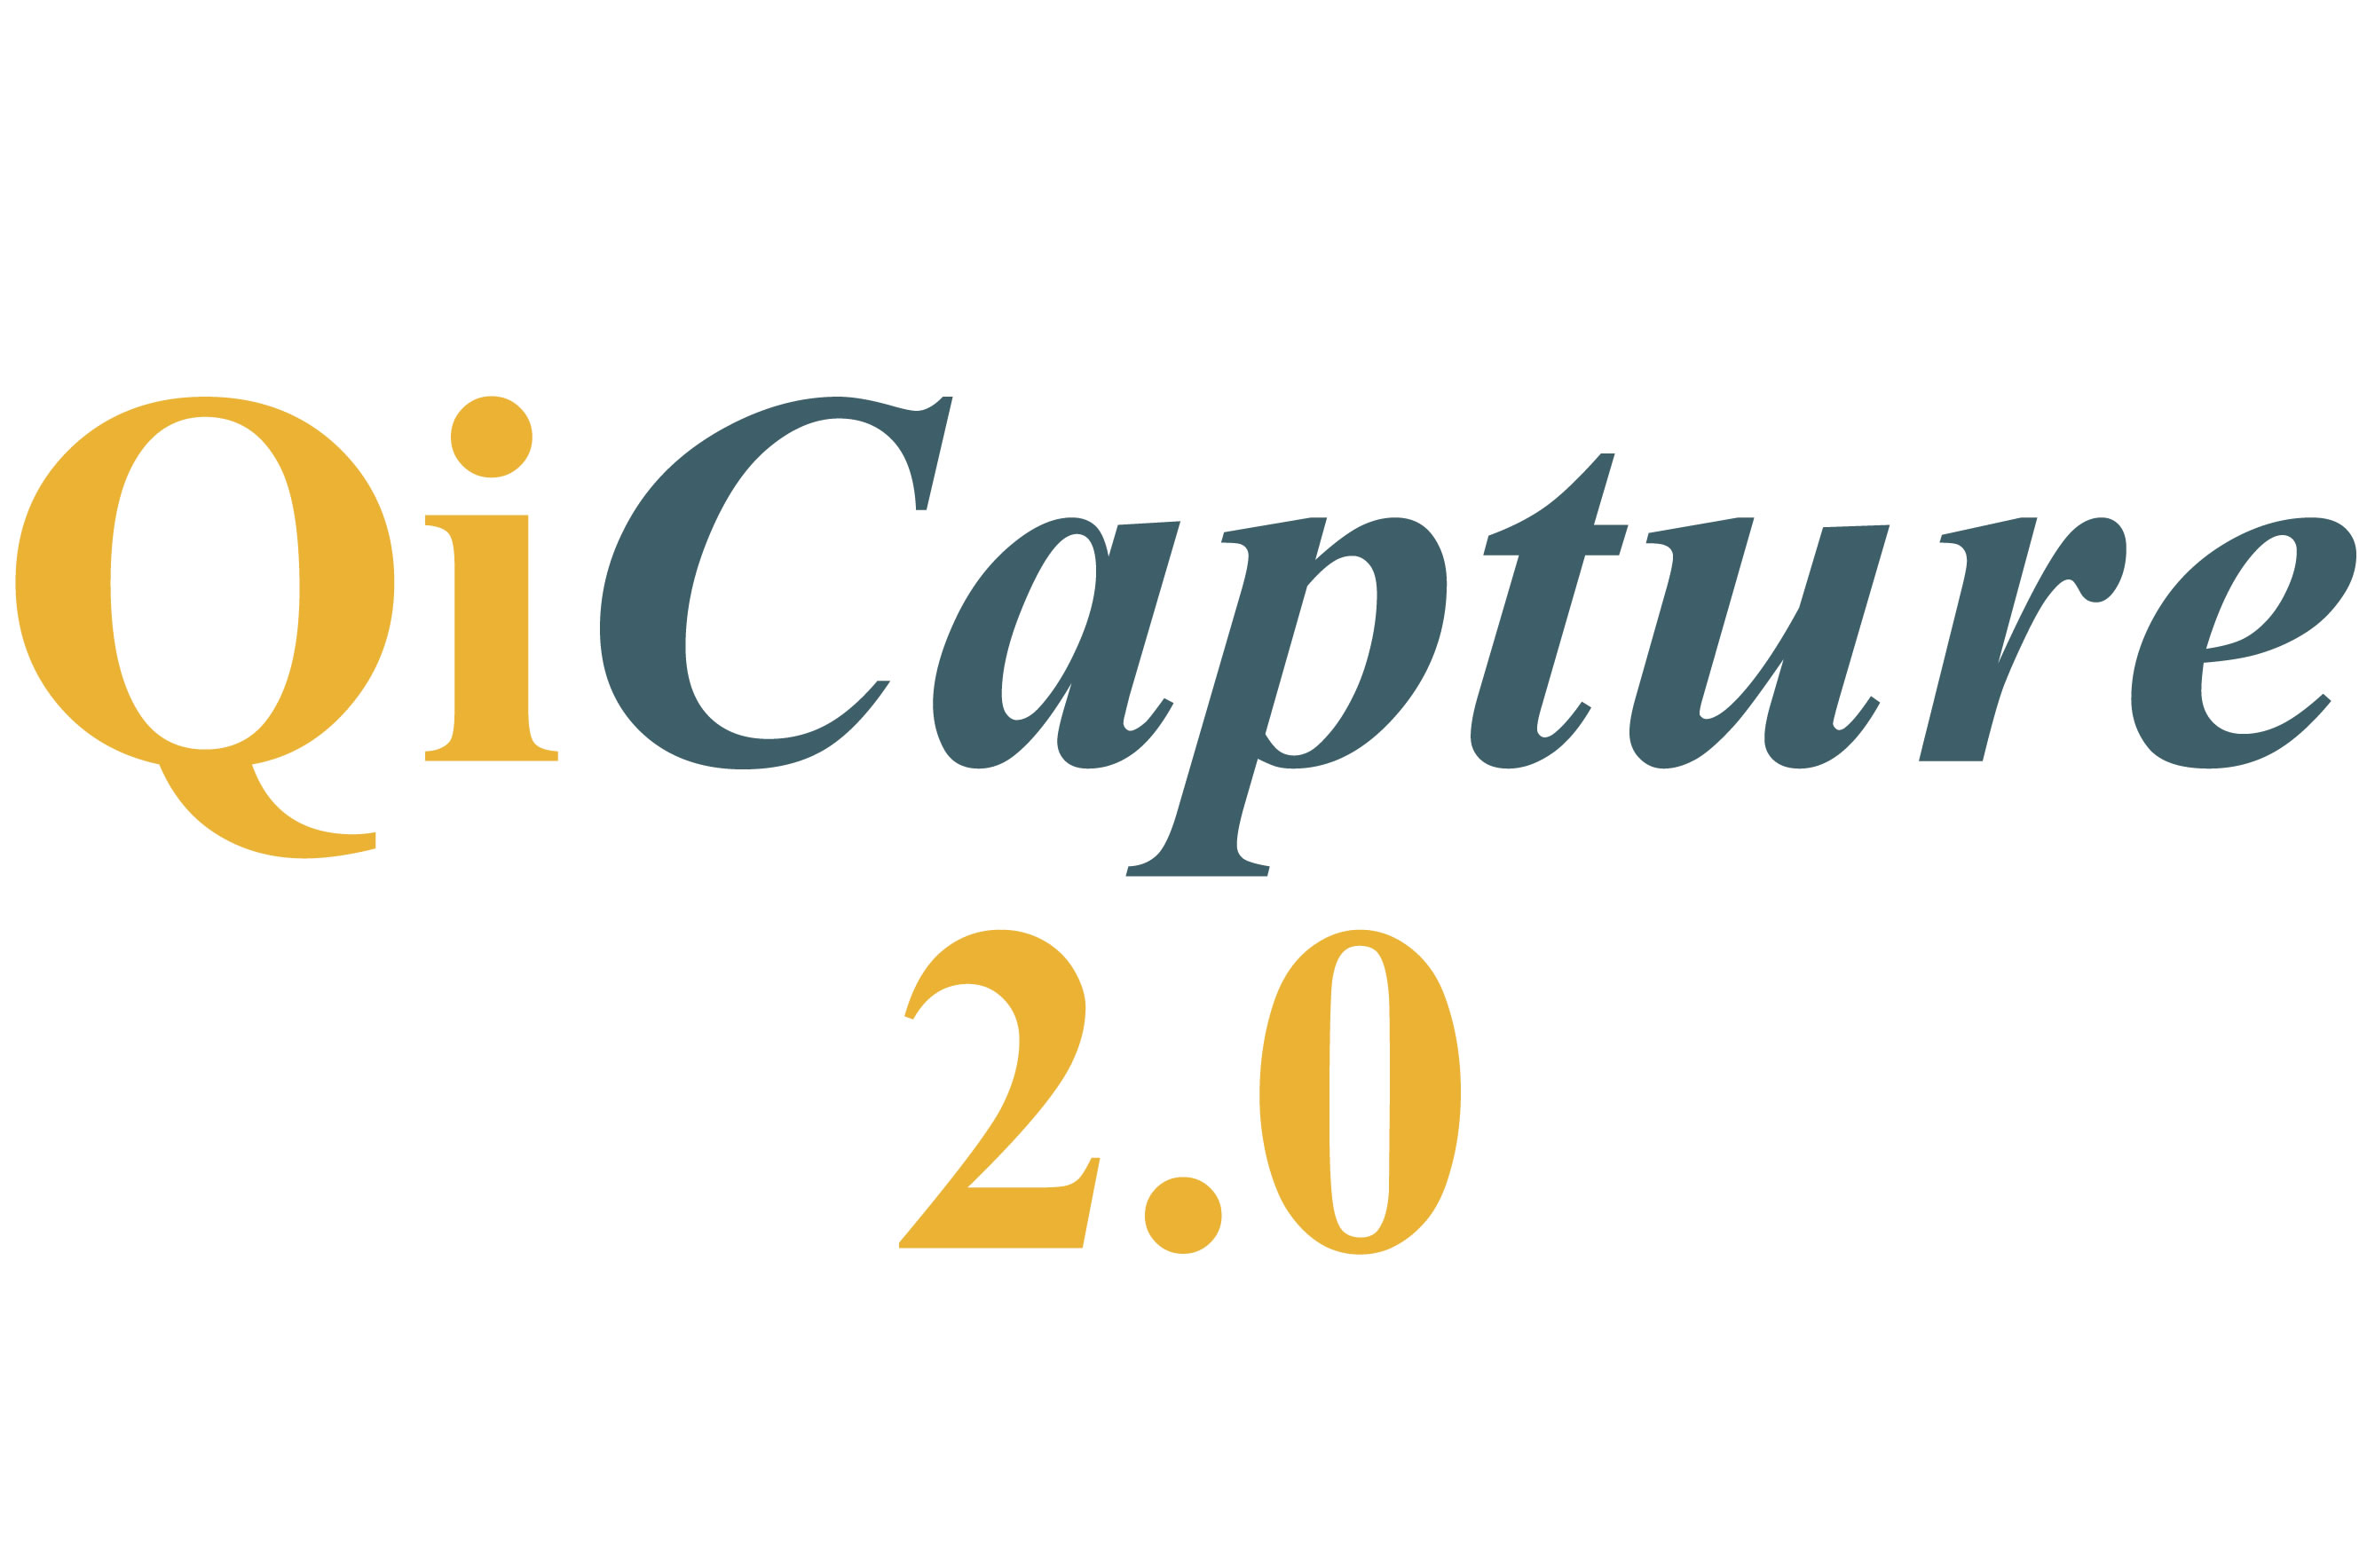 QiCapture 2.0 - Capture Software for Qidenus Book Scanners by iGuana & Qidenus Technologies